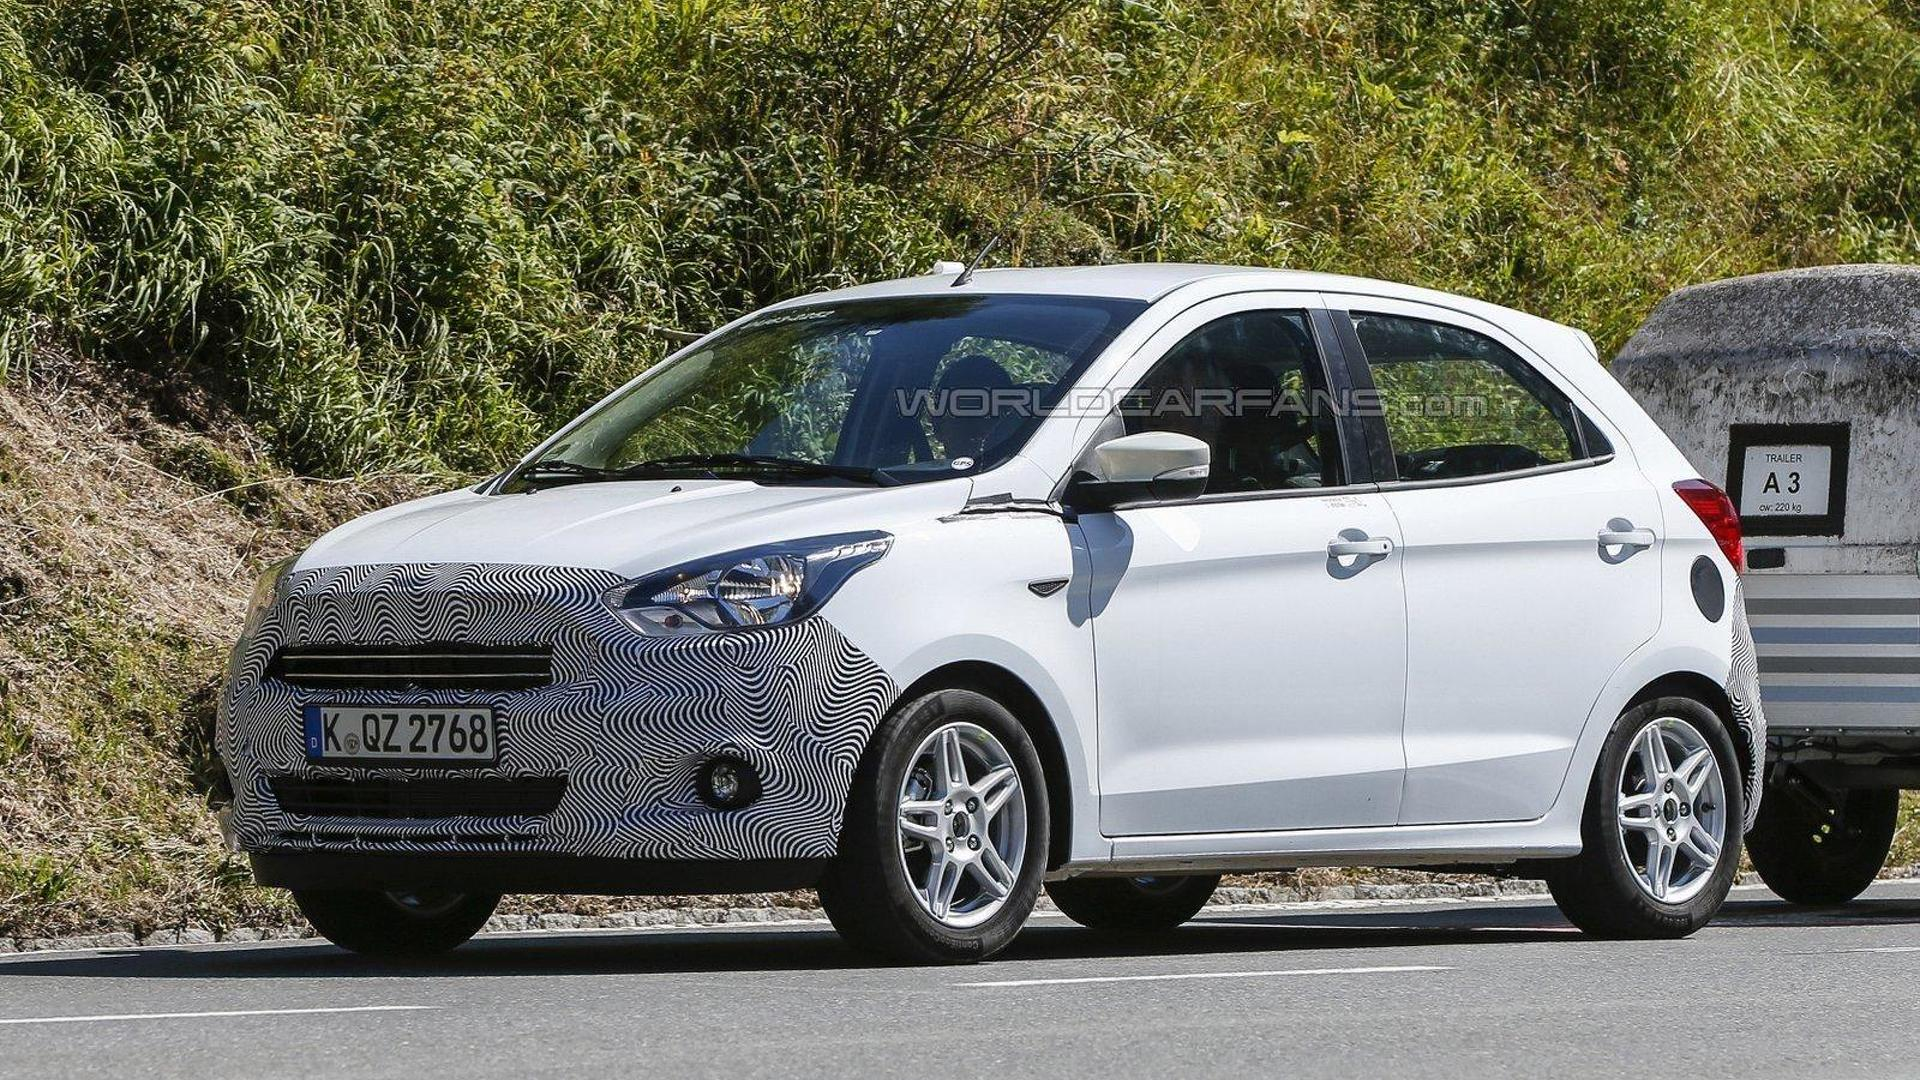 Euro-spec Ford Ka spied undergoing testing